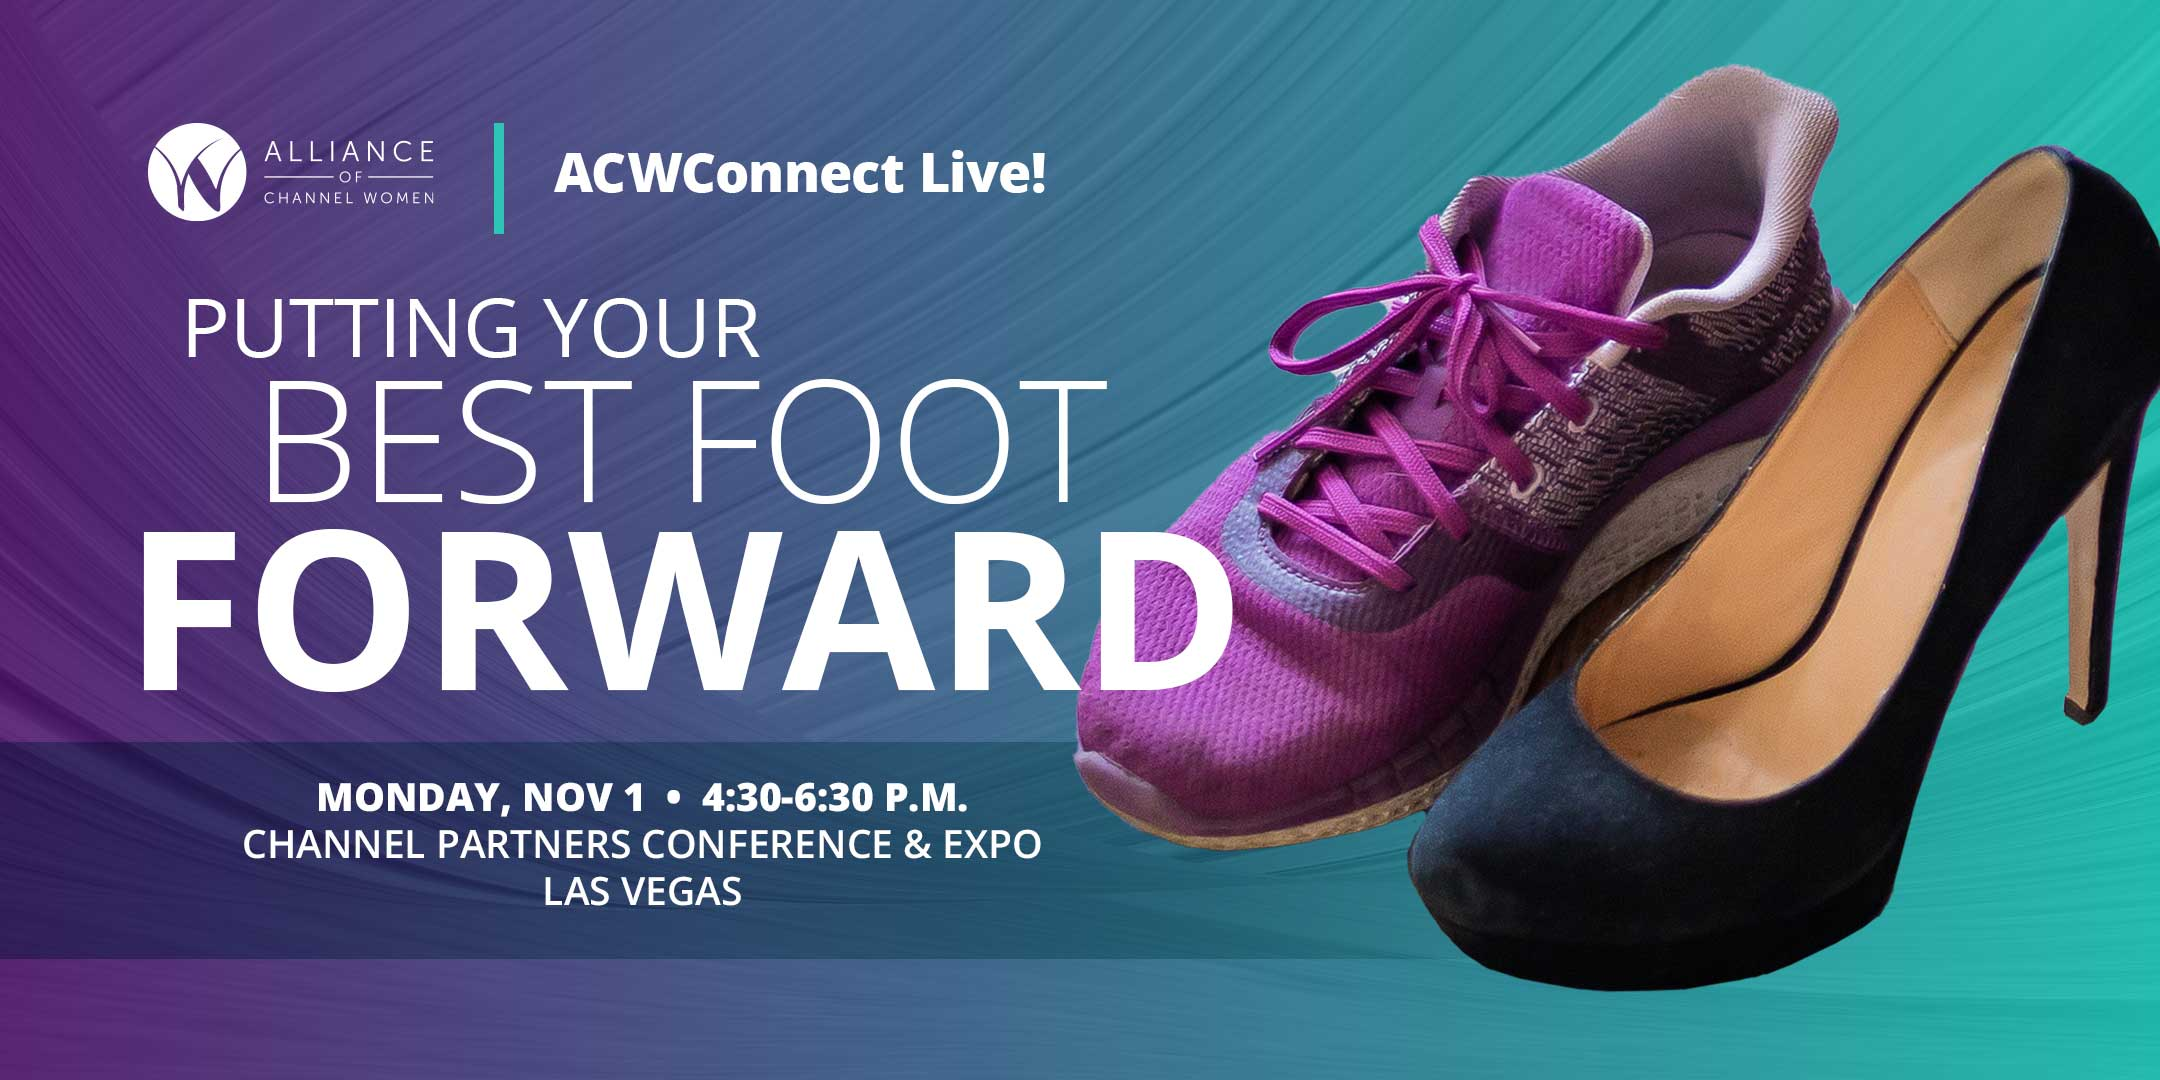 ACWConnect Live! Fall 2021 Registration Open